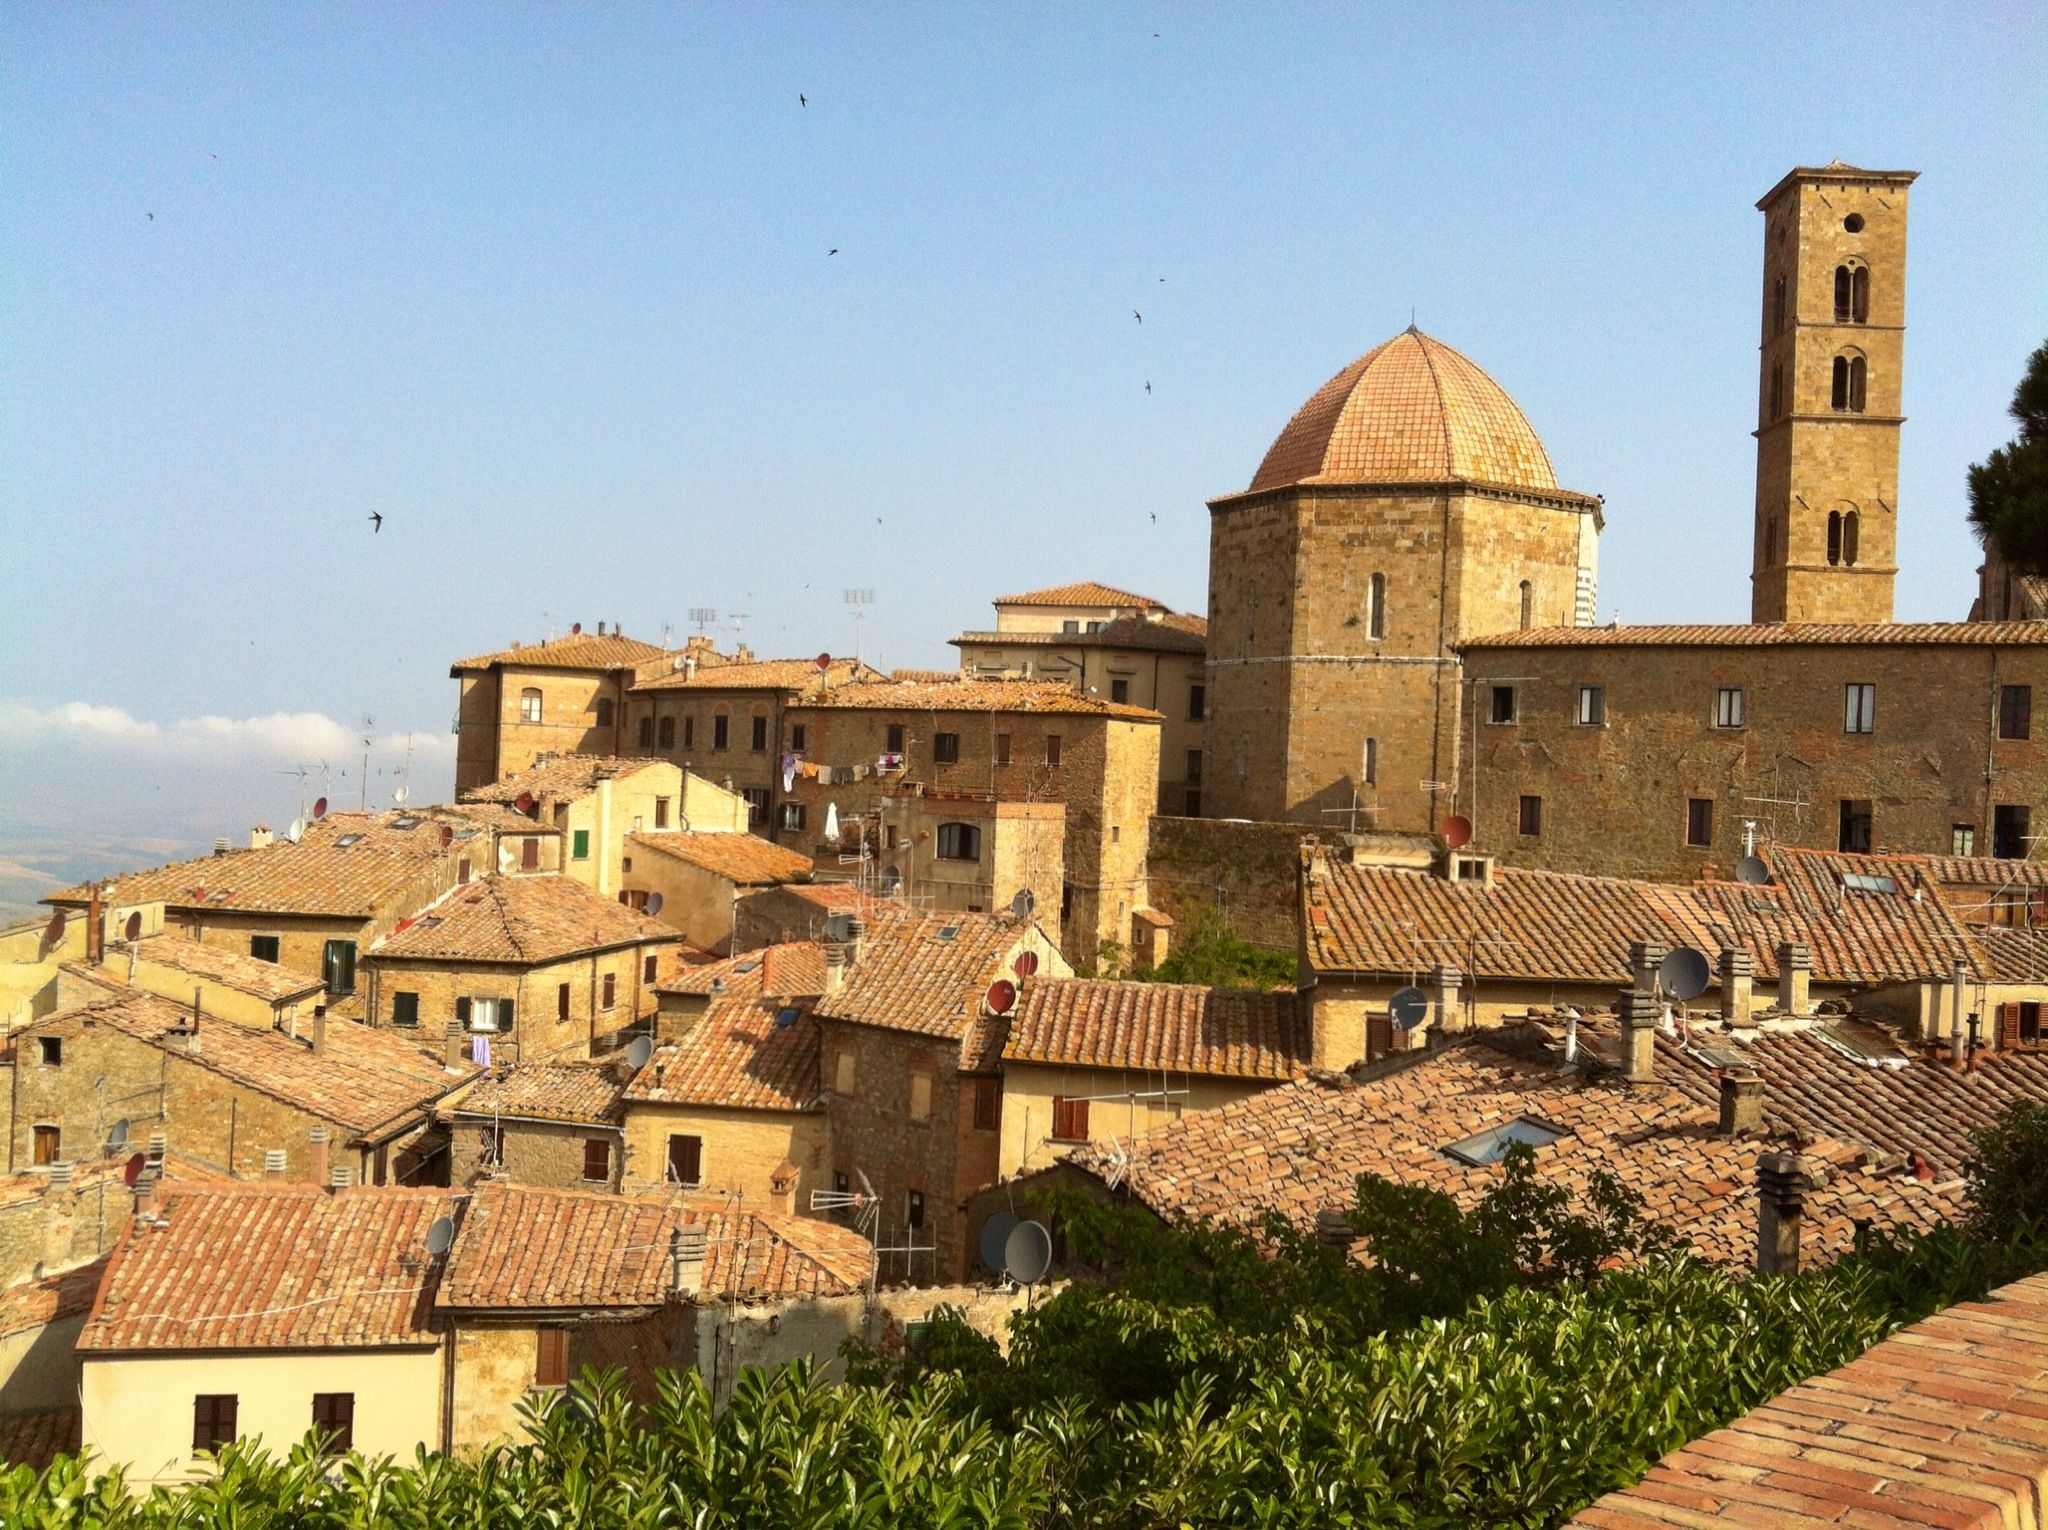 Volterra Italy  city photo : Volterra Italy | Places I have been | Pinterest